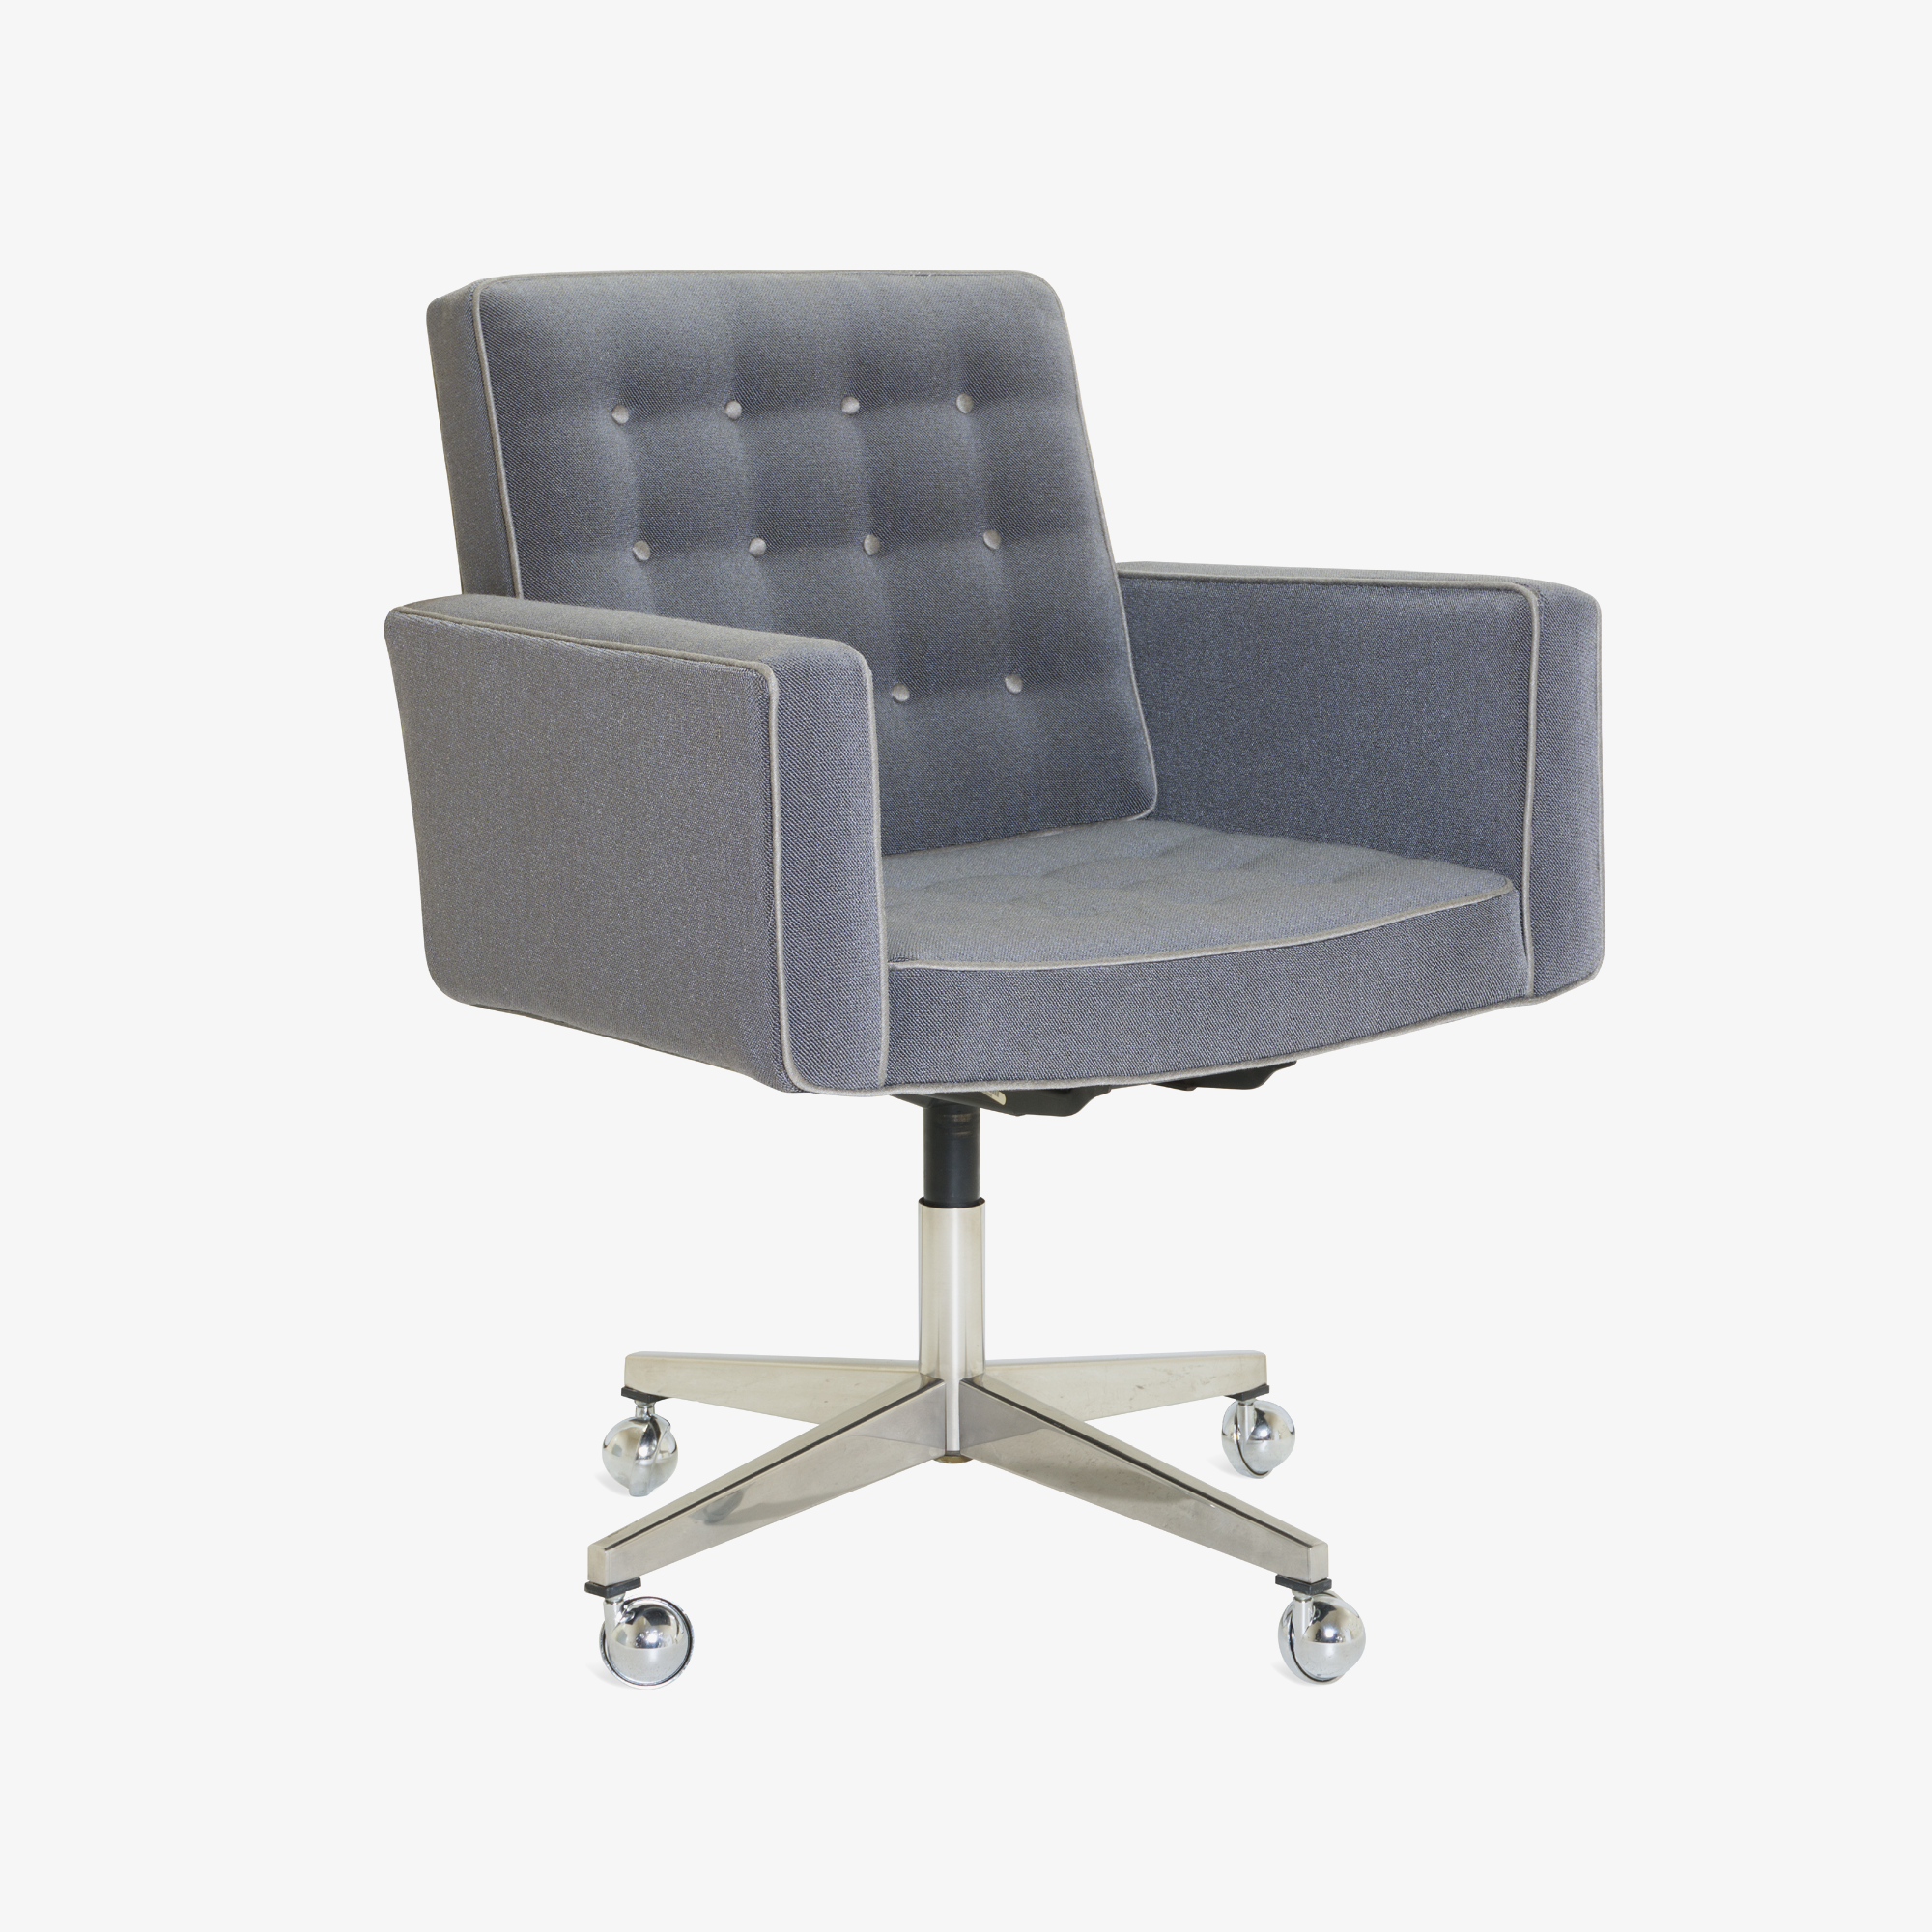 Executive Chair in Vintage KnollTextiles by Vincent Cafiero for Knoll2.png